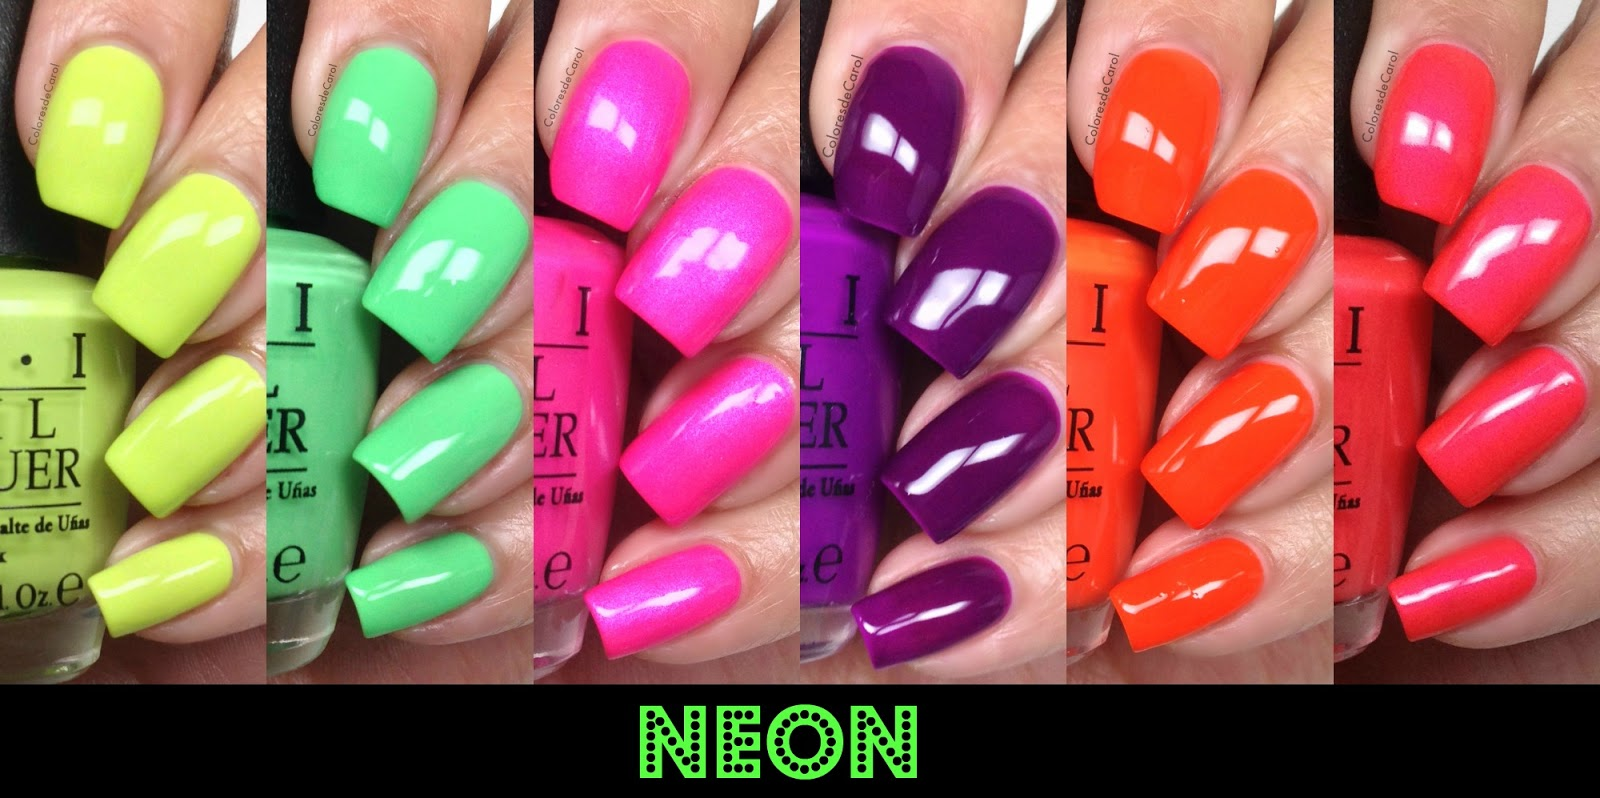 Yarnandbeauty Matte Cotton Candy Nails Feat OPI NEON Tutorial For